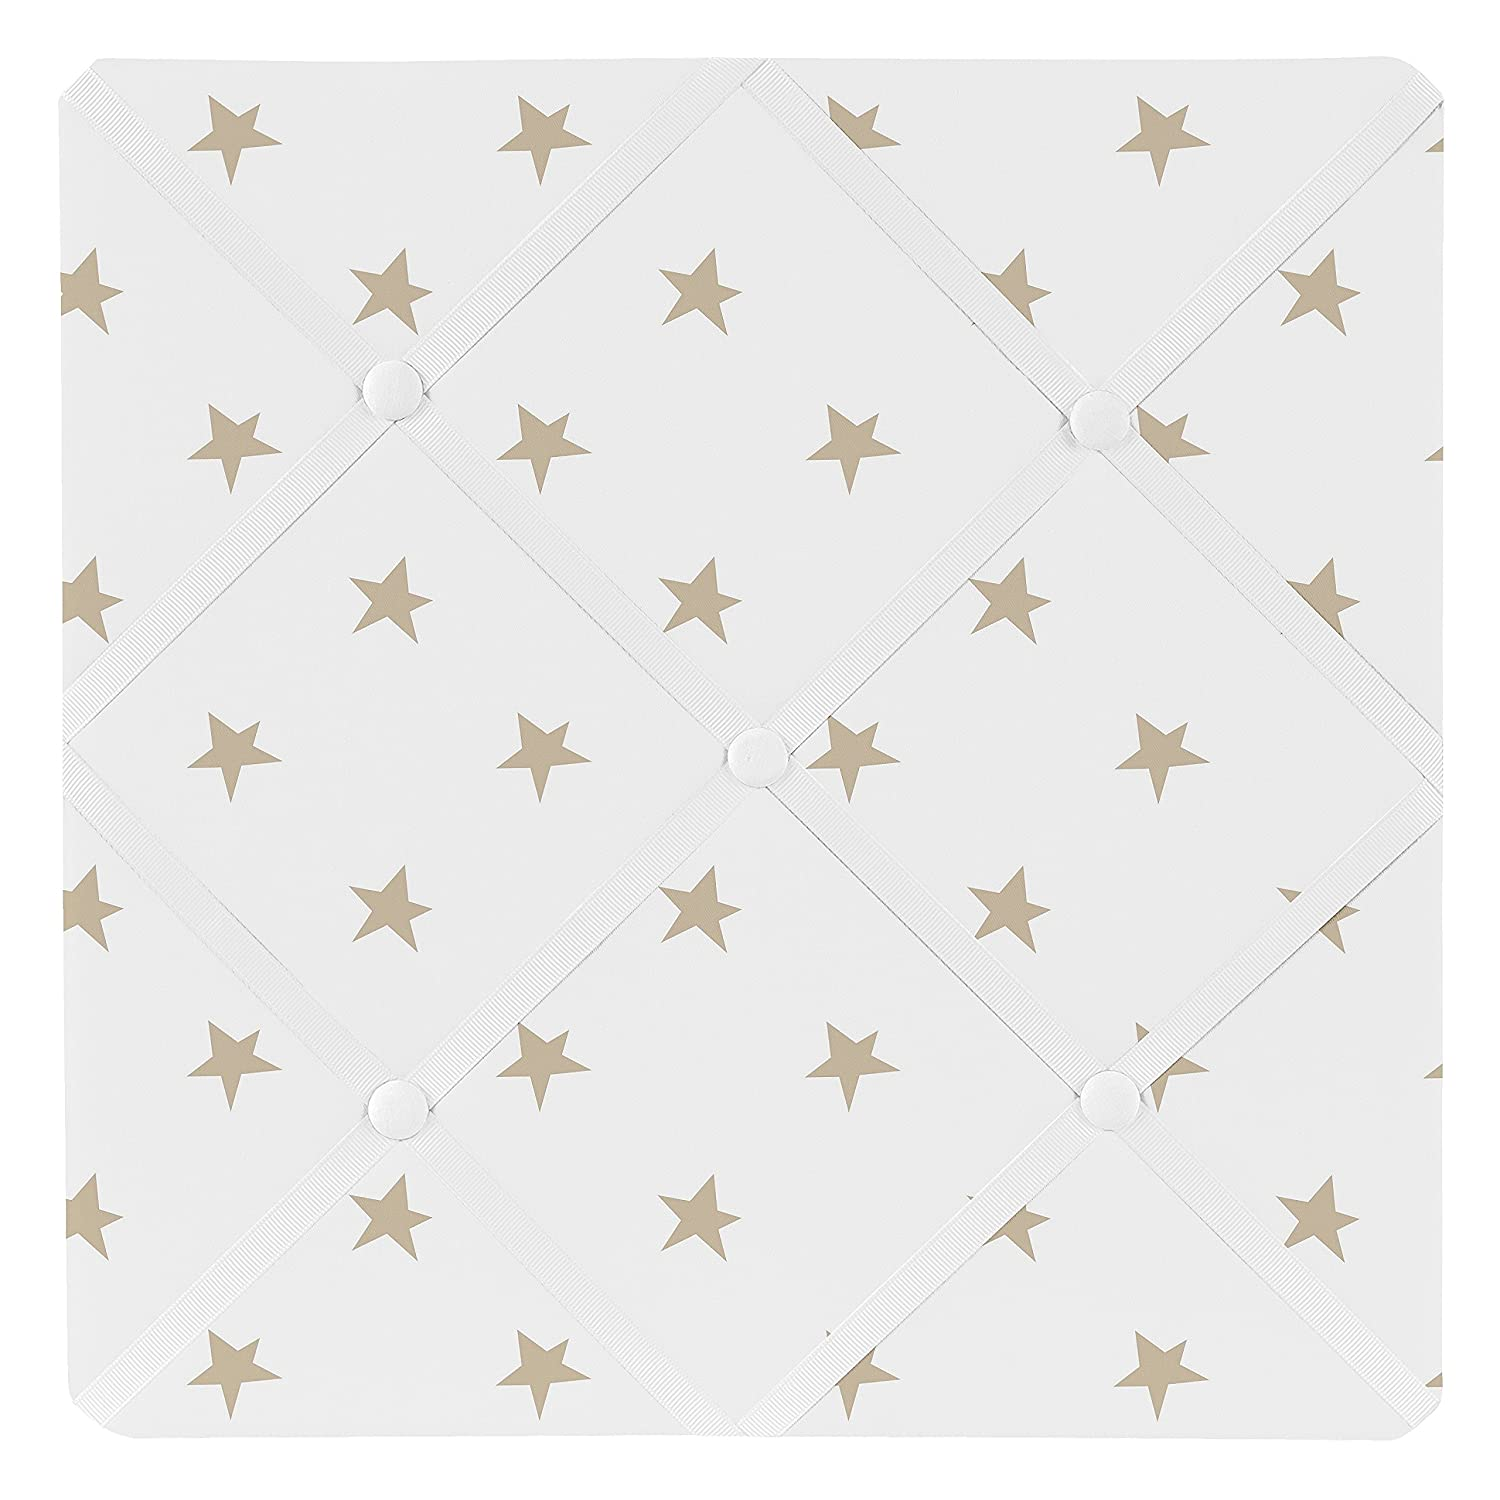 Sweet Jojo Designs Gold and White Star Fabric Memory Memo Photo Bulletin Board for Celestial Collection by LLC B074MCHTH6